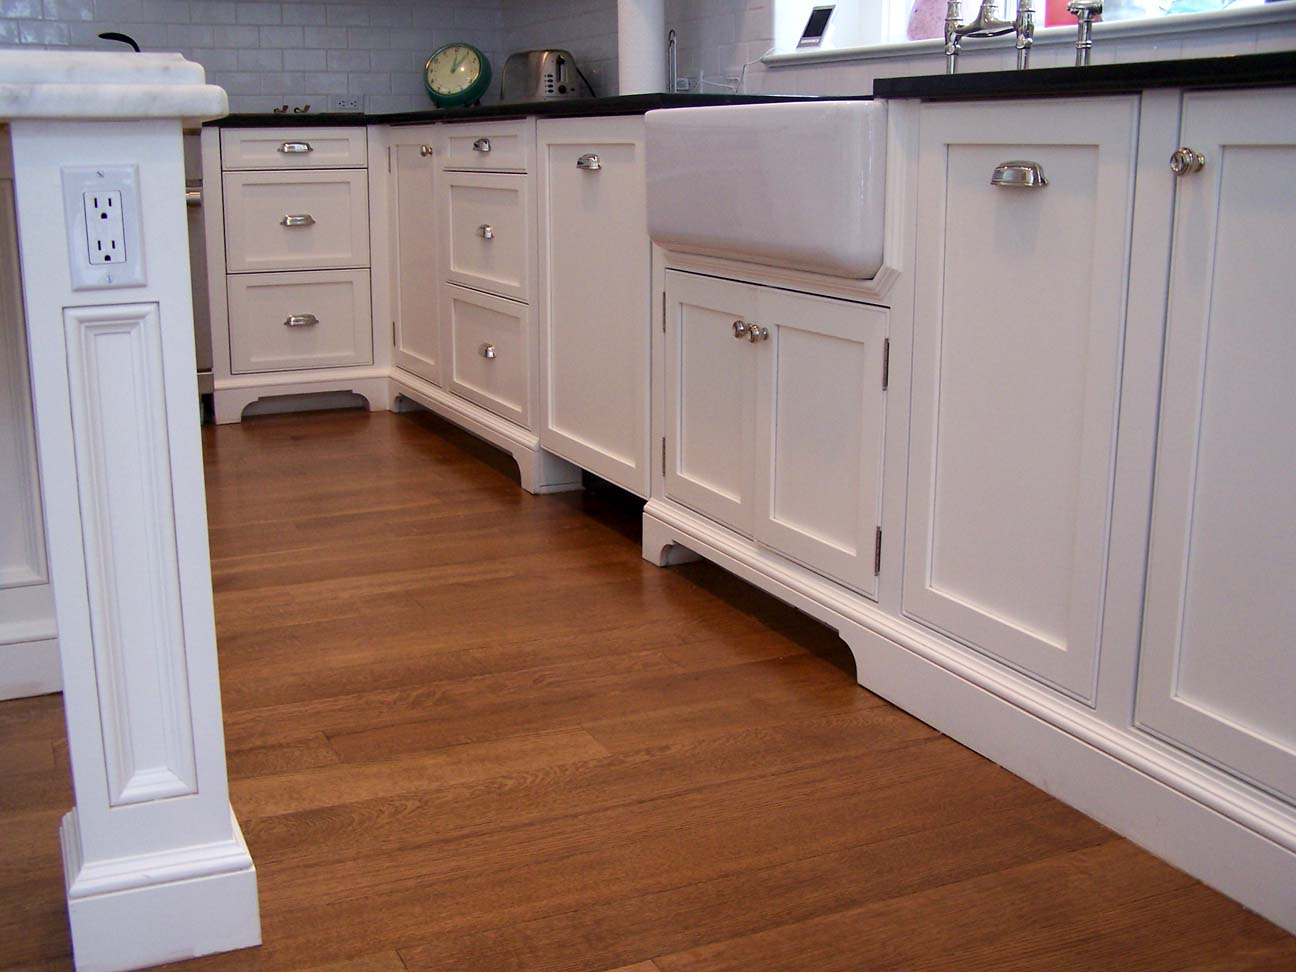 create standout kitchen molding architectural elements kitchen cabinets with legs hudsoncabinetmaking com